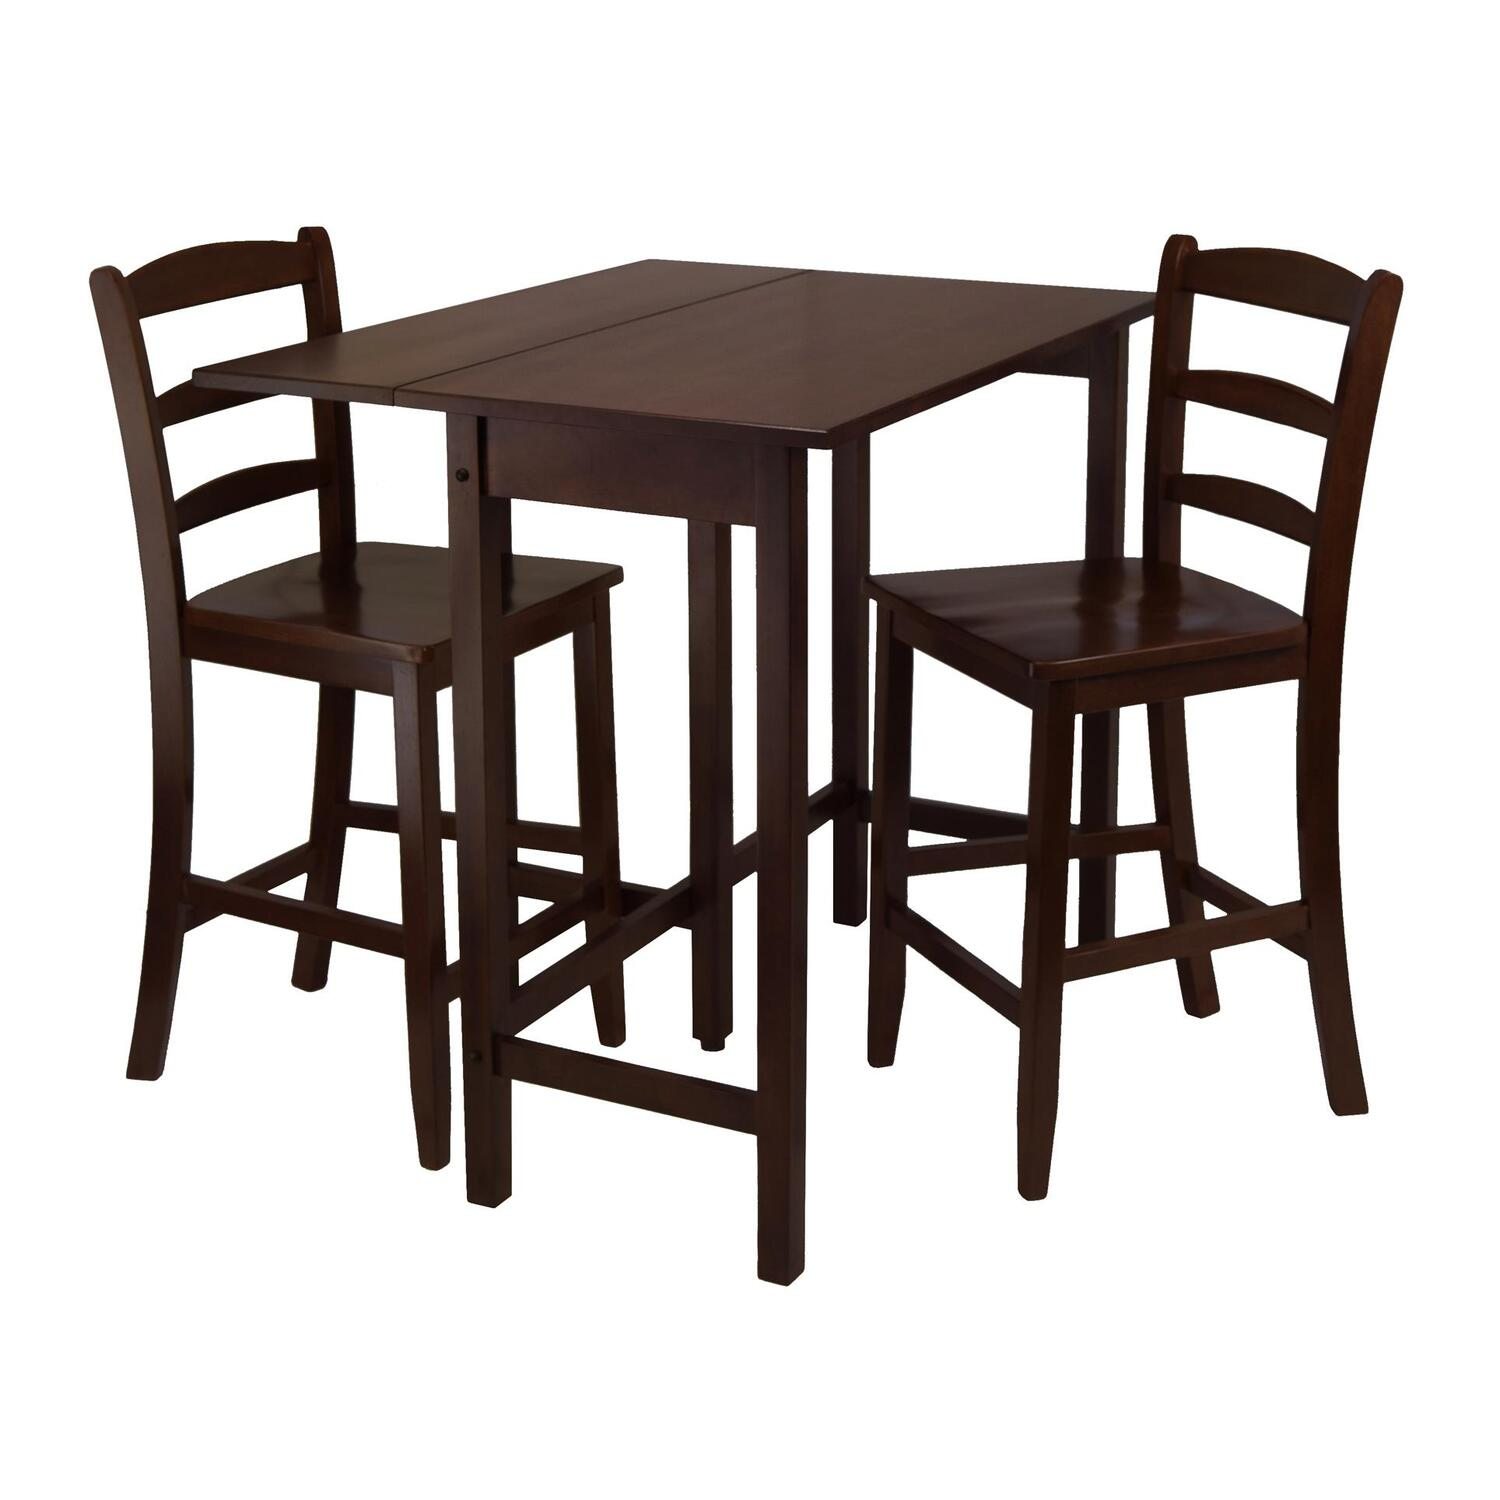 Small Drop Leaf Table With 2 Chairs Winsome Lynnwood 3pc Drop Leaf High Table With 2 Counter